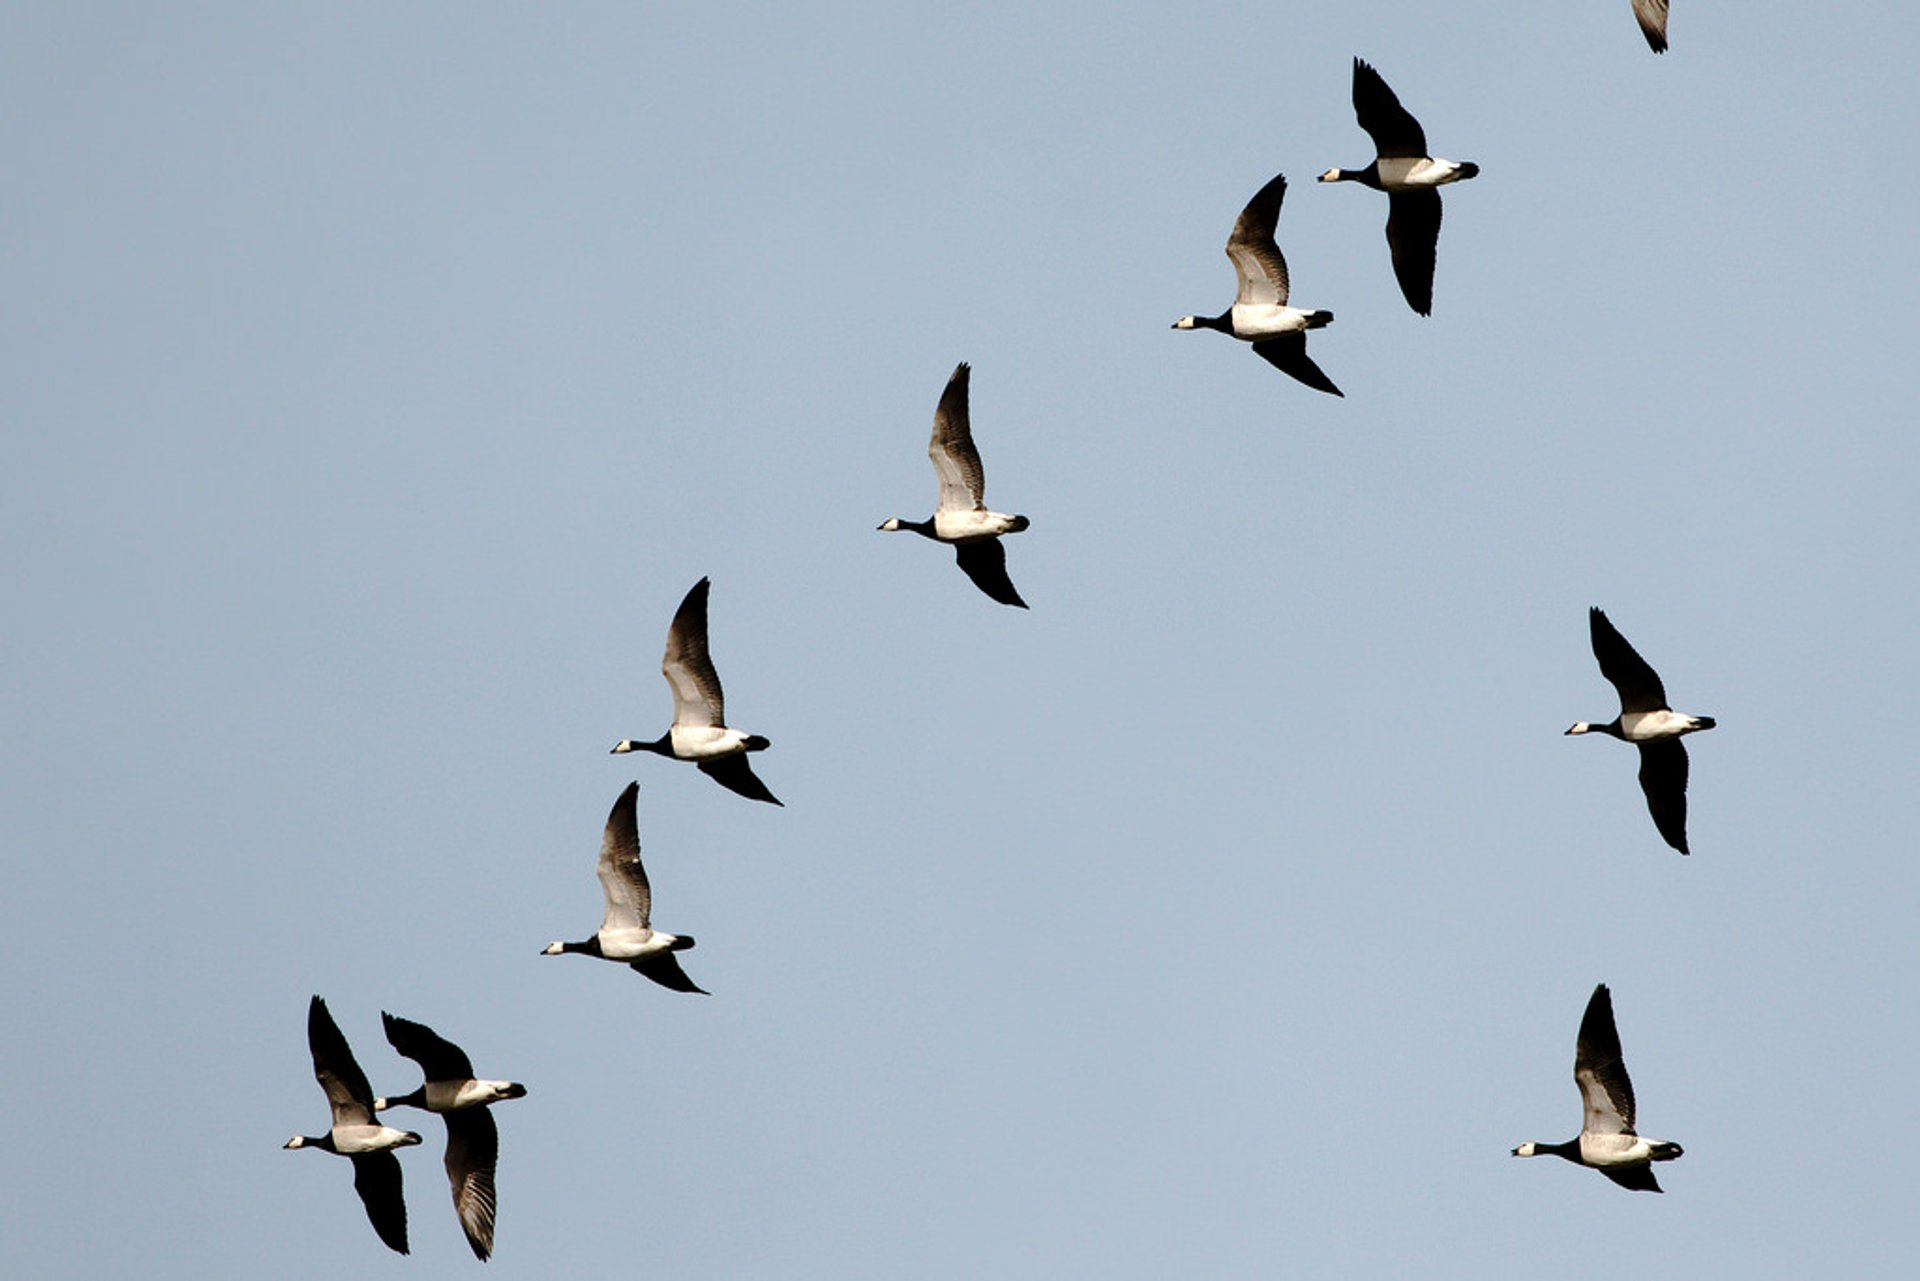 Best time to see Migrating Birds at Falsterbo in Sweden